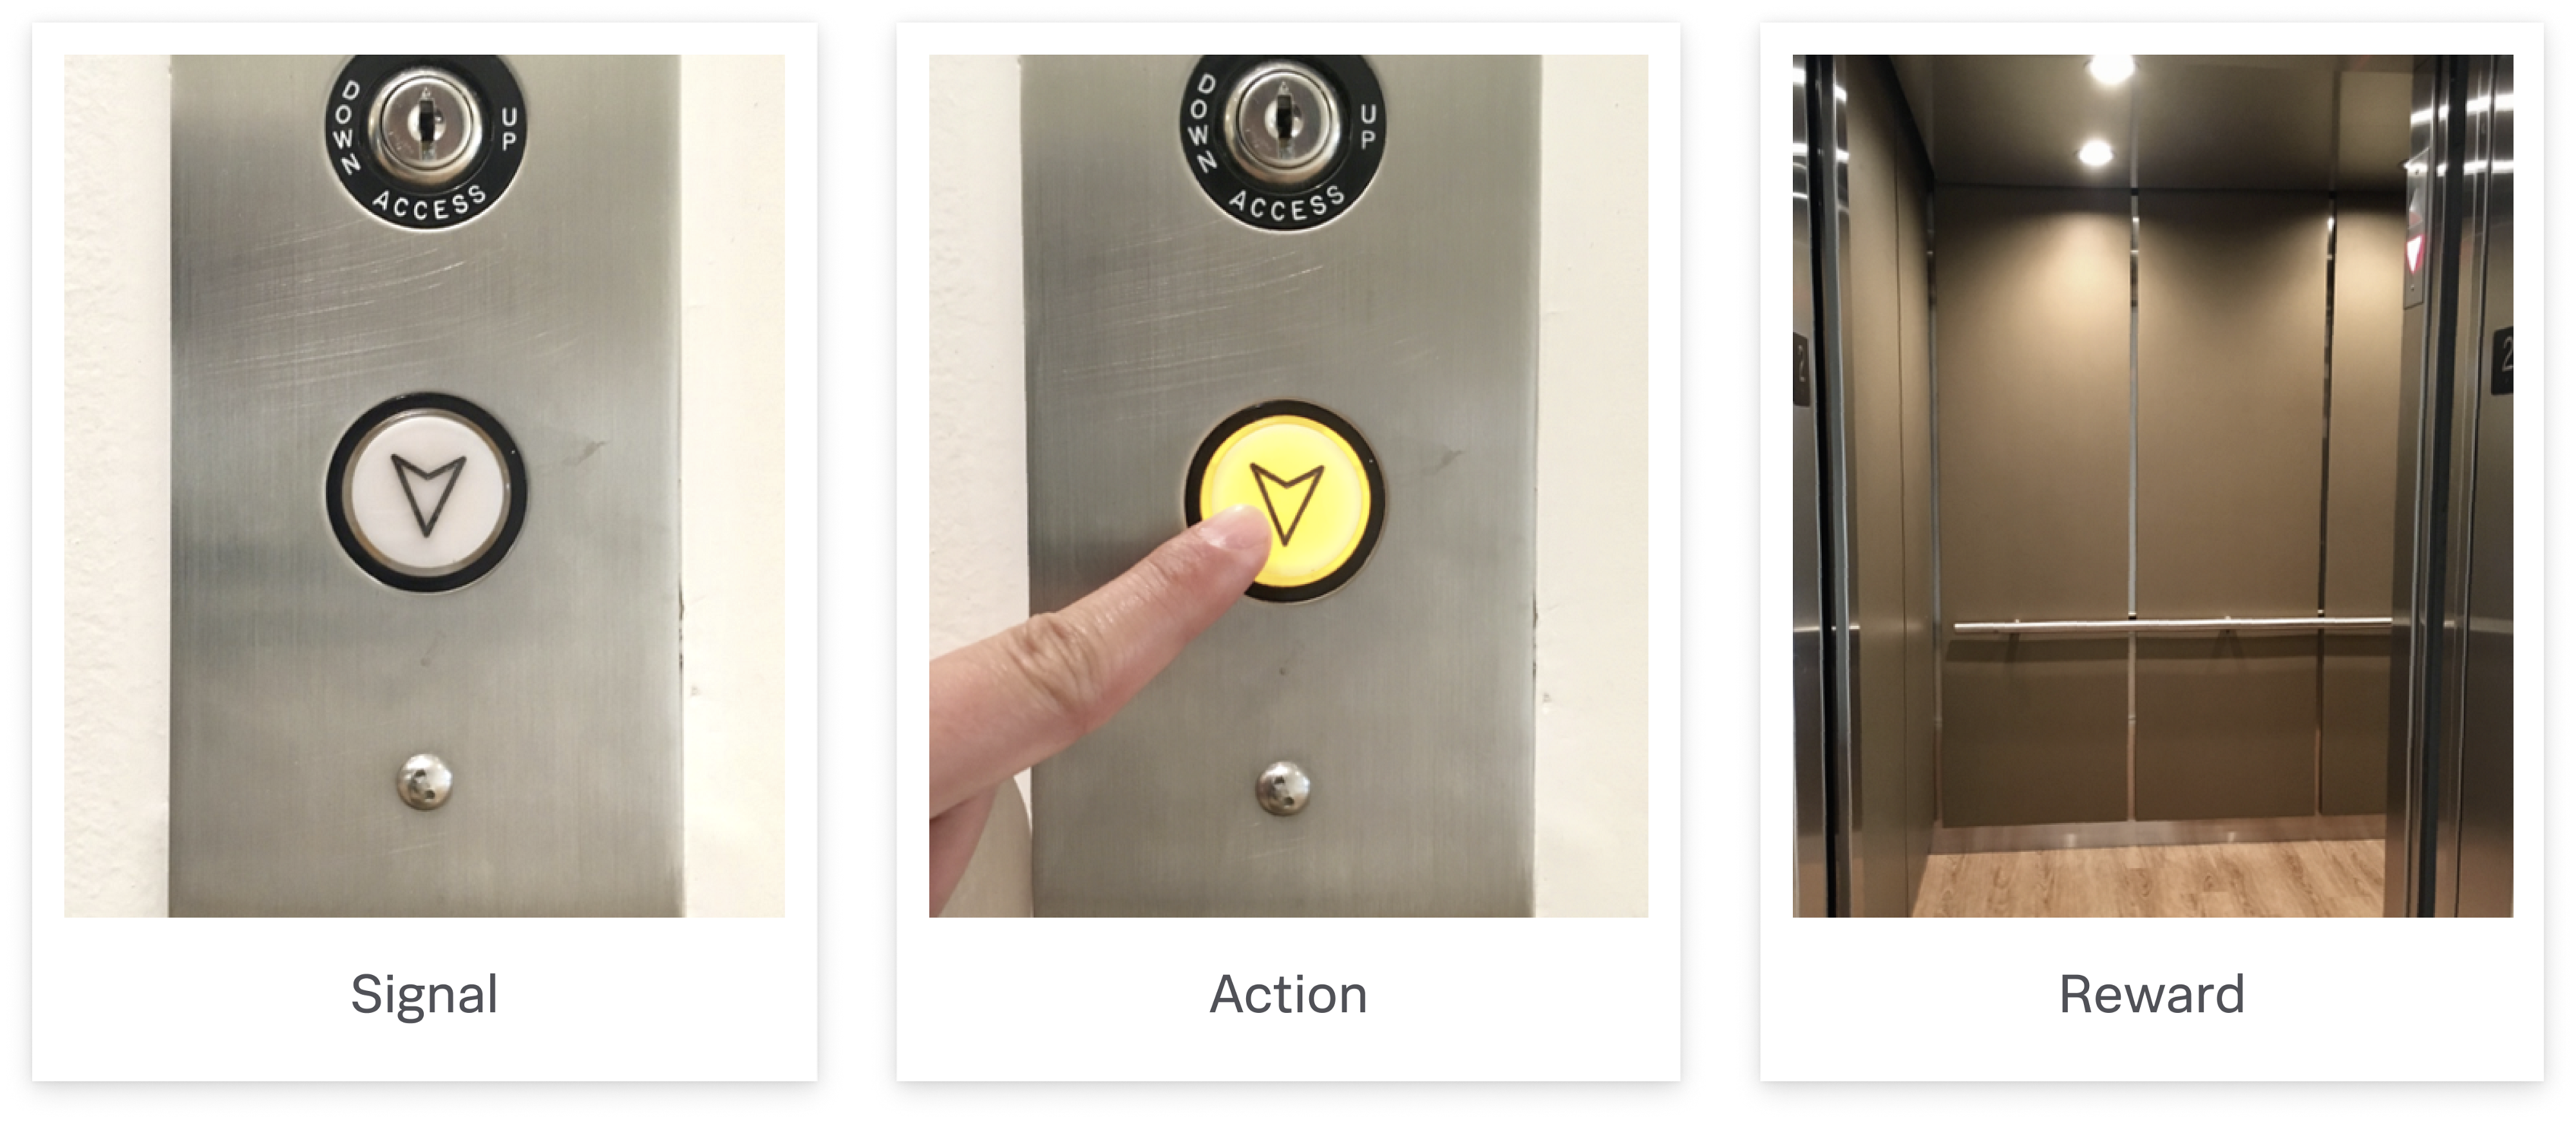 An interaction cycle with an elevator button